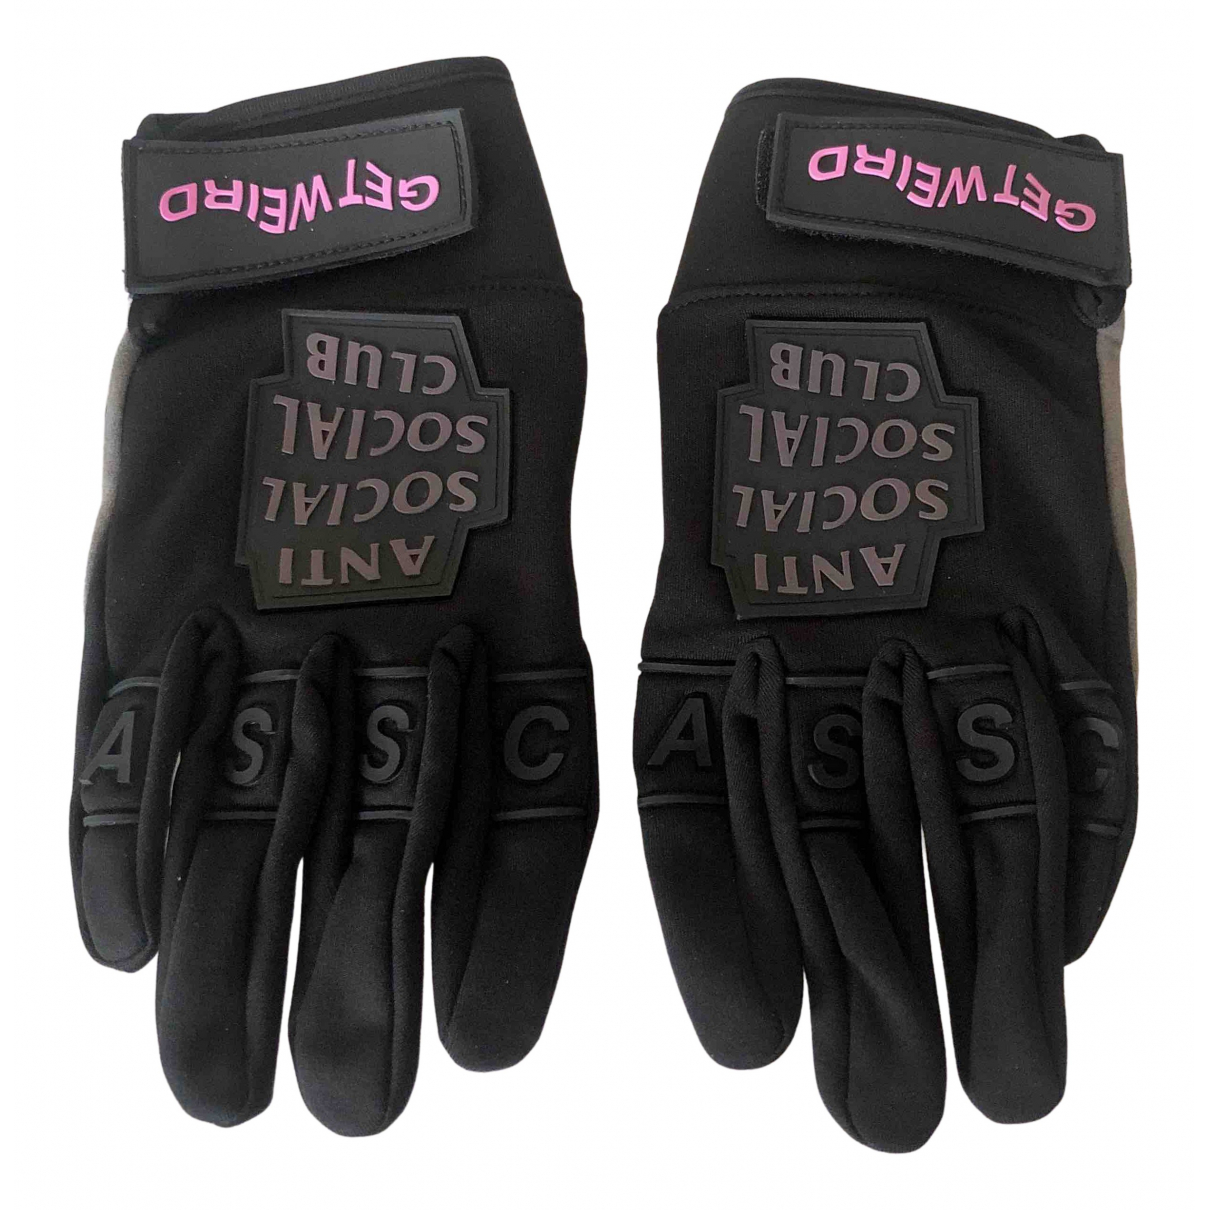 Anti Social Social Club N Black Gloves for Women S International